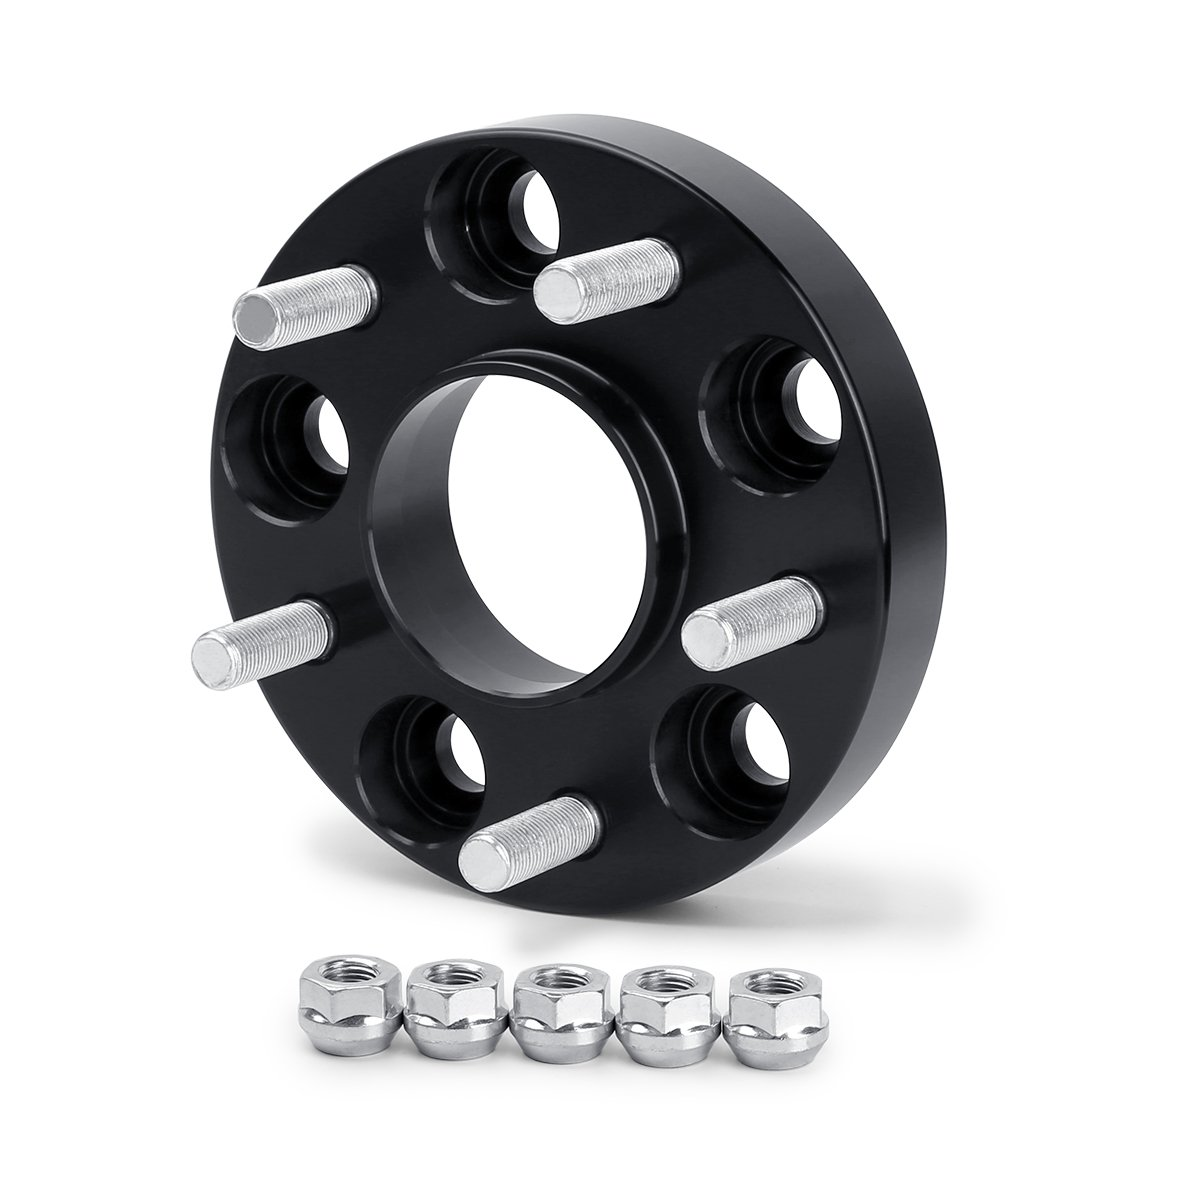 Dynofit 5x4.5 Wheel Spacers for 300ZX 350Z 370Z Altima Leopard G35 G37 FX35 S14 and More 4Pcs 25mm 5x114.3 Hubcentric Forged Wheels Spacer 66.1mm Hub Bore M12x1.25 for Nissan Infiniti 5 Lug Rims